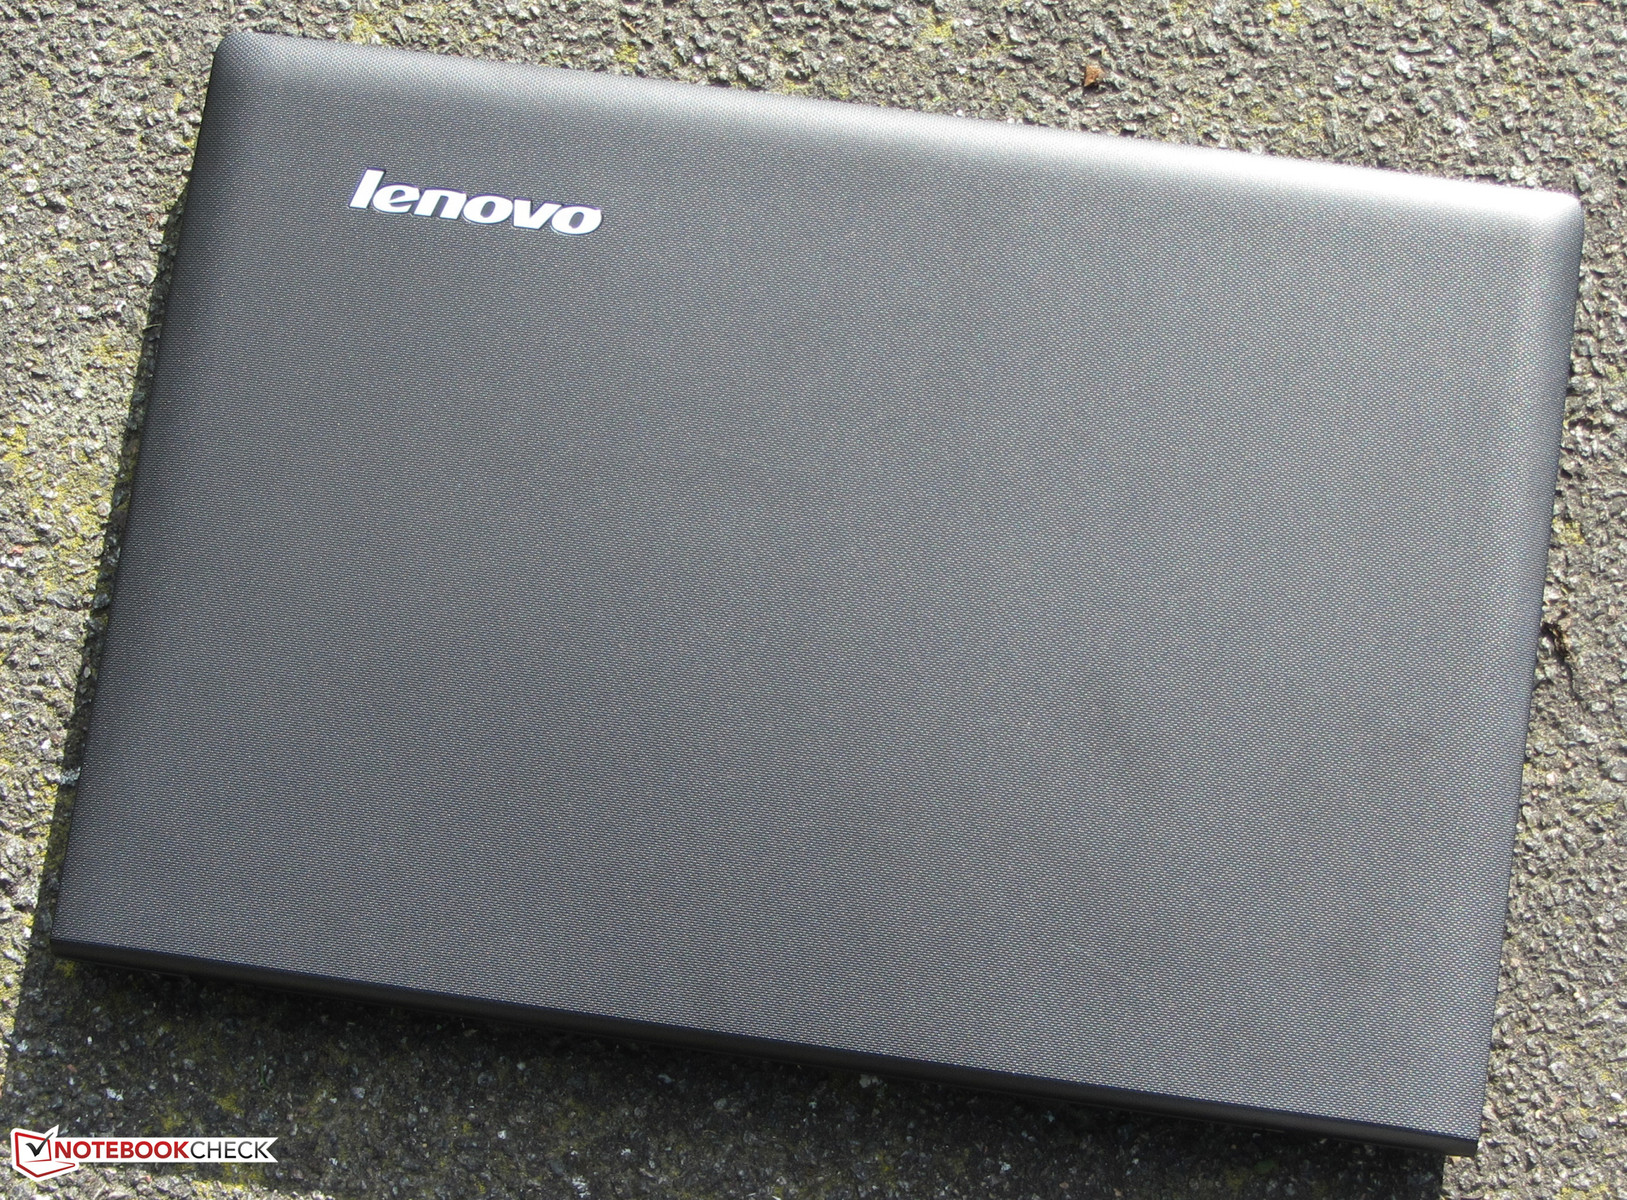 Lenovo Ideapad Z50 75 Notebook Review Update Reviews G40 80 80e400vbid